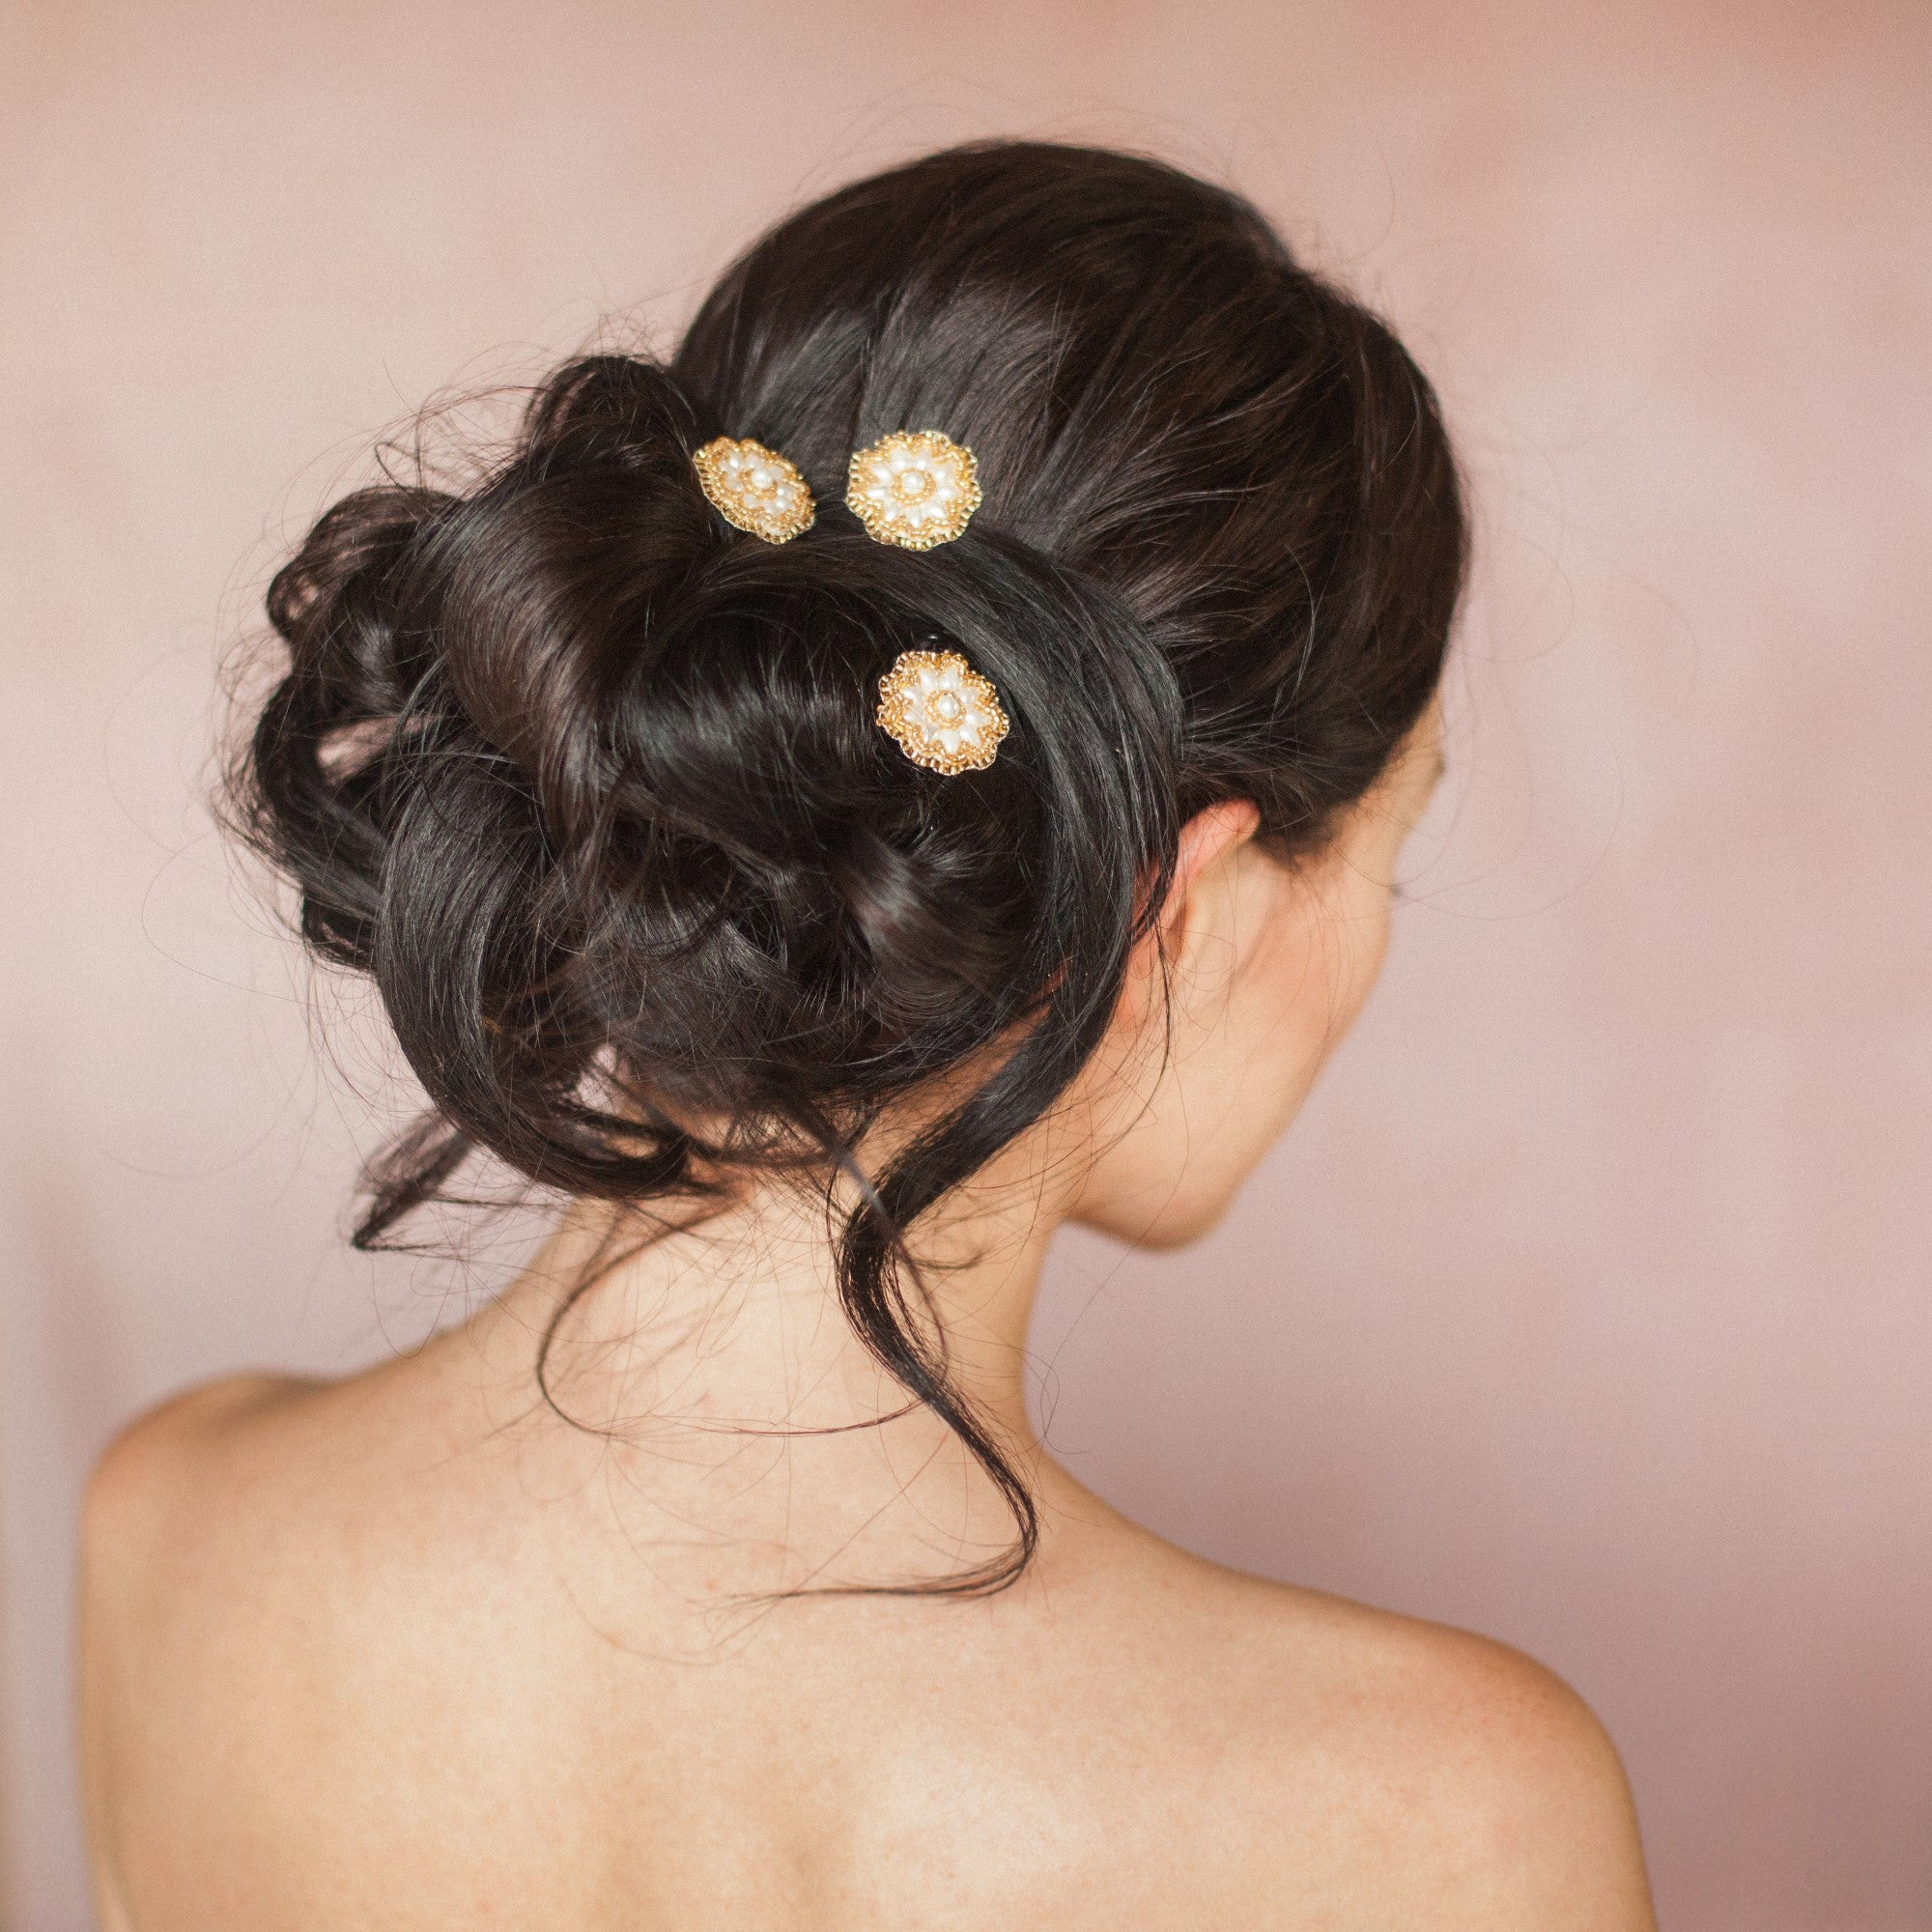 Aimee gold wedding daisy hairpins